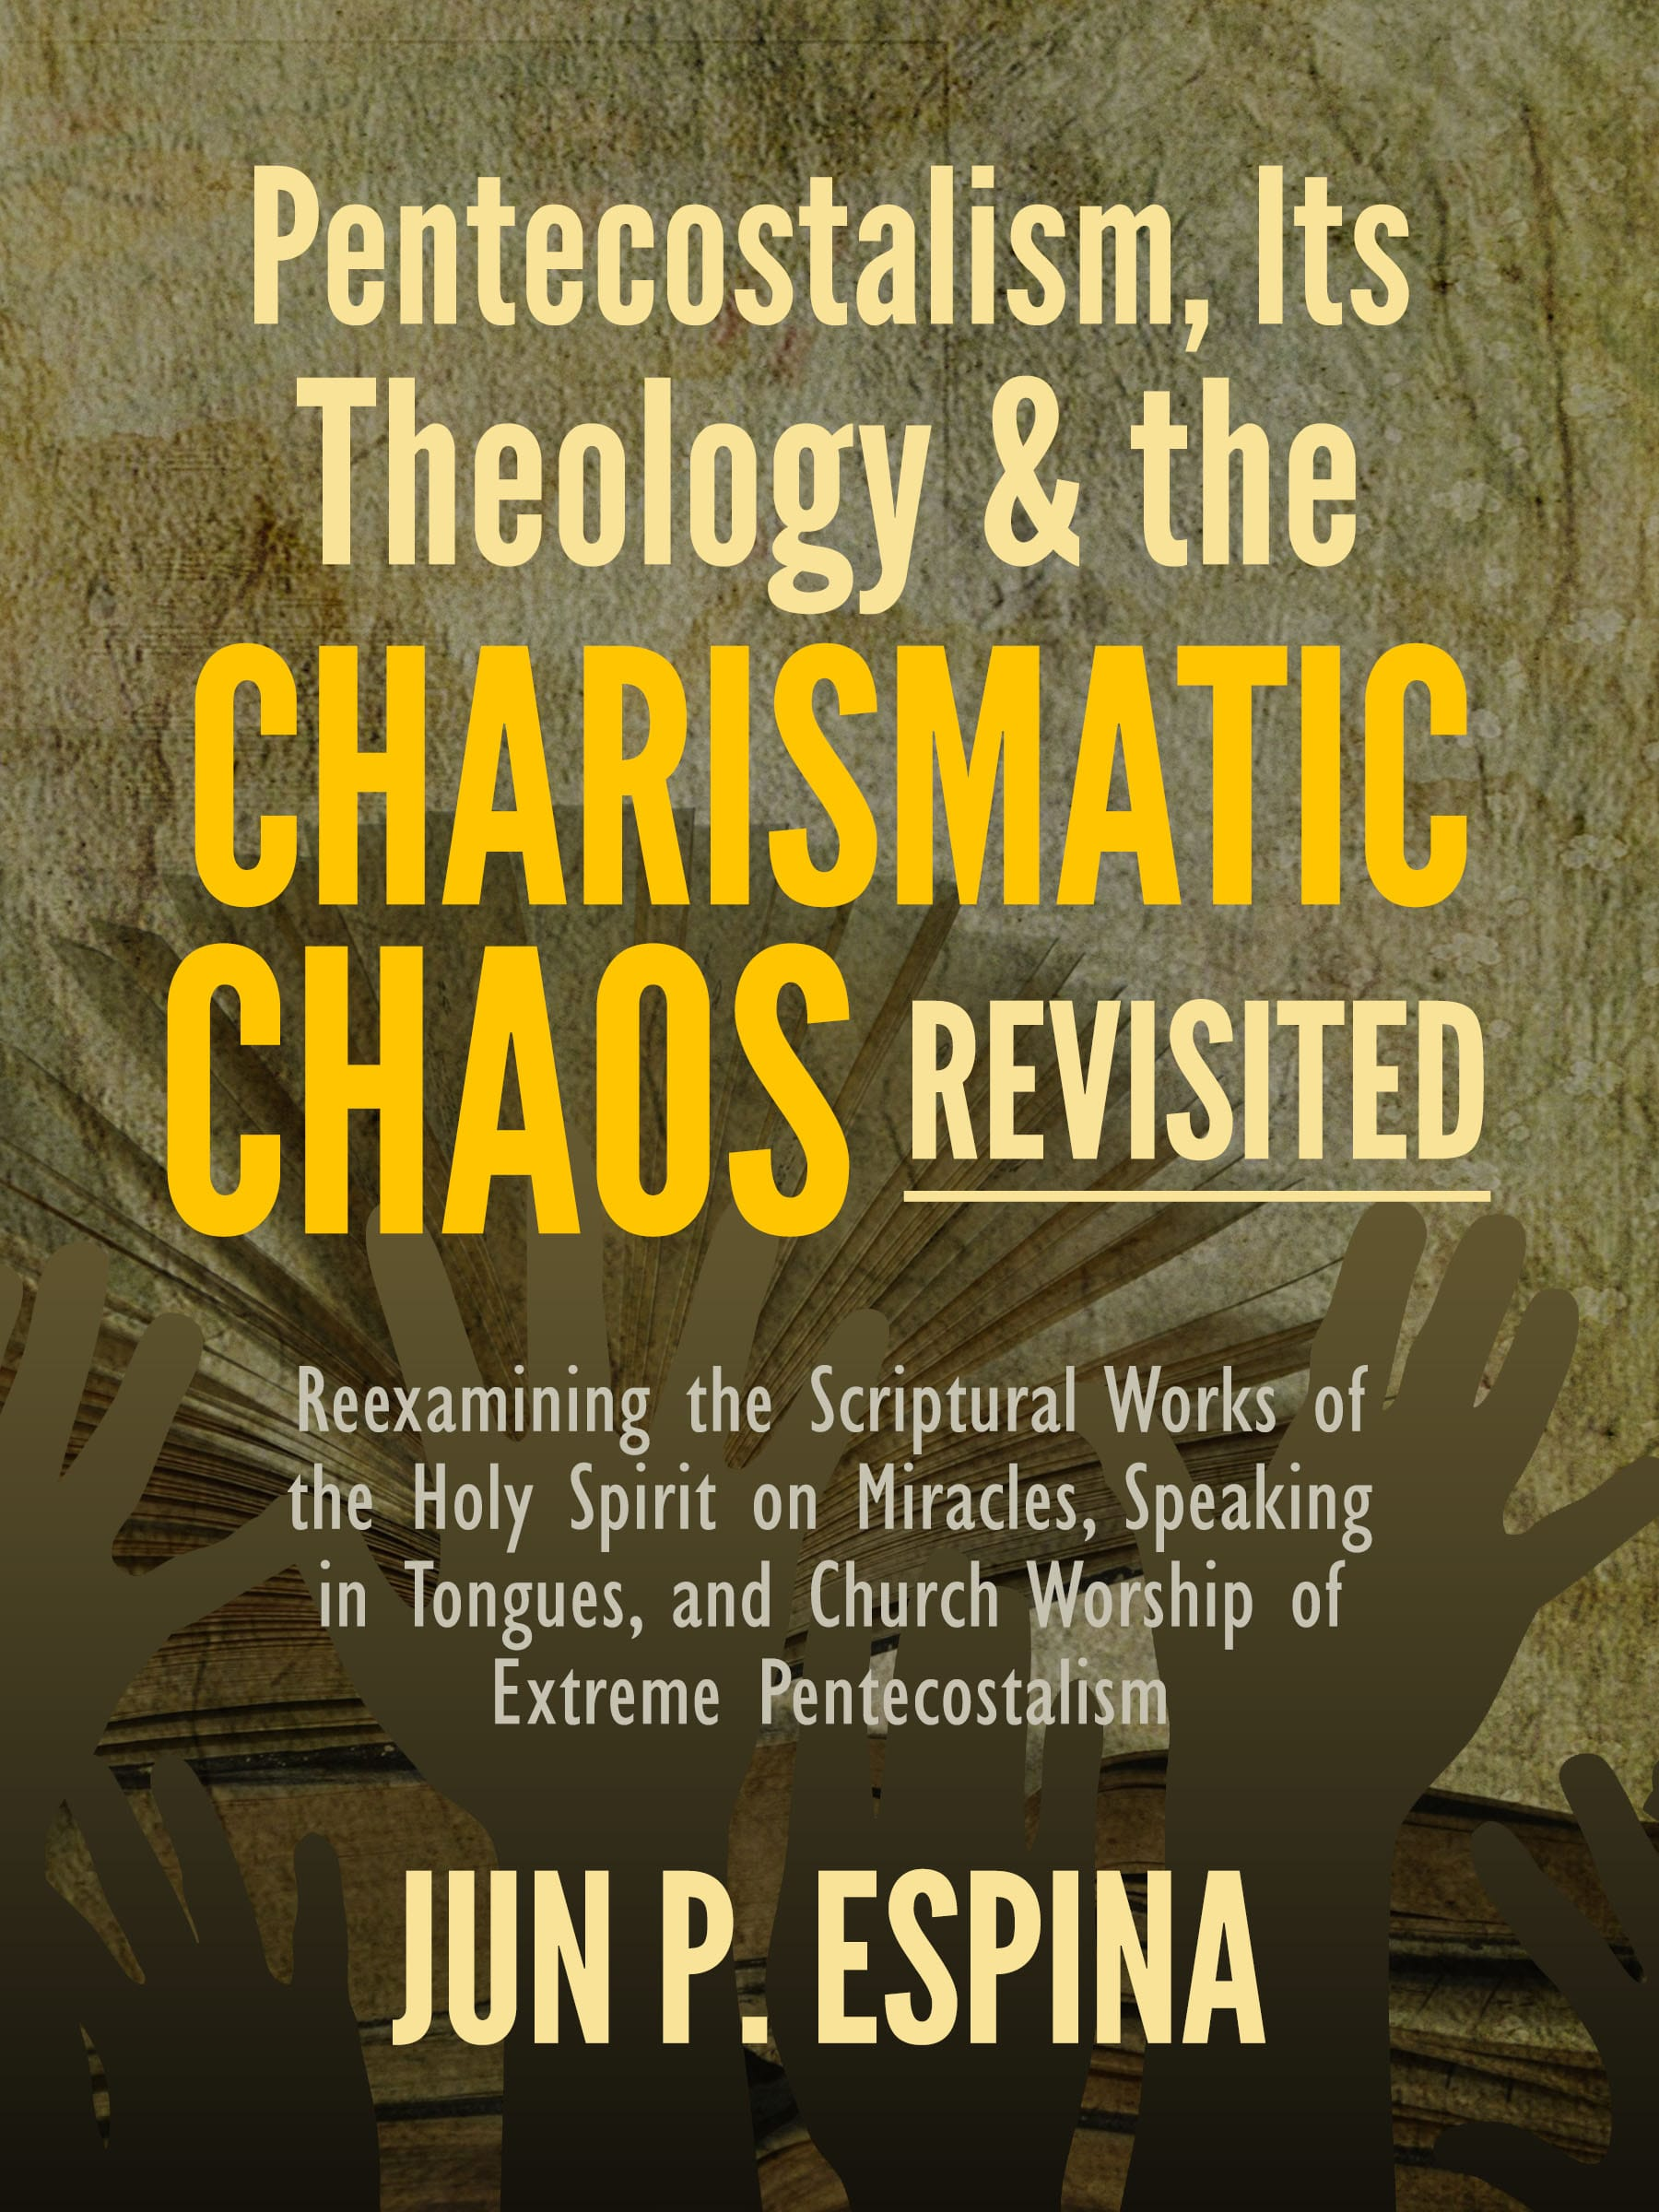 courage jun espina pentecostalism theology charismatic chaos revisited